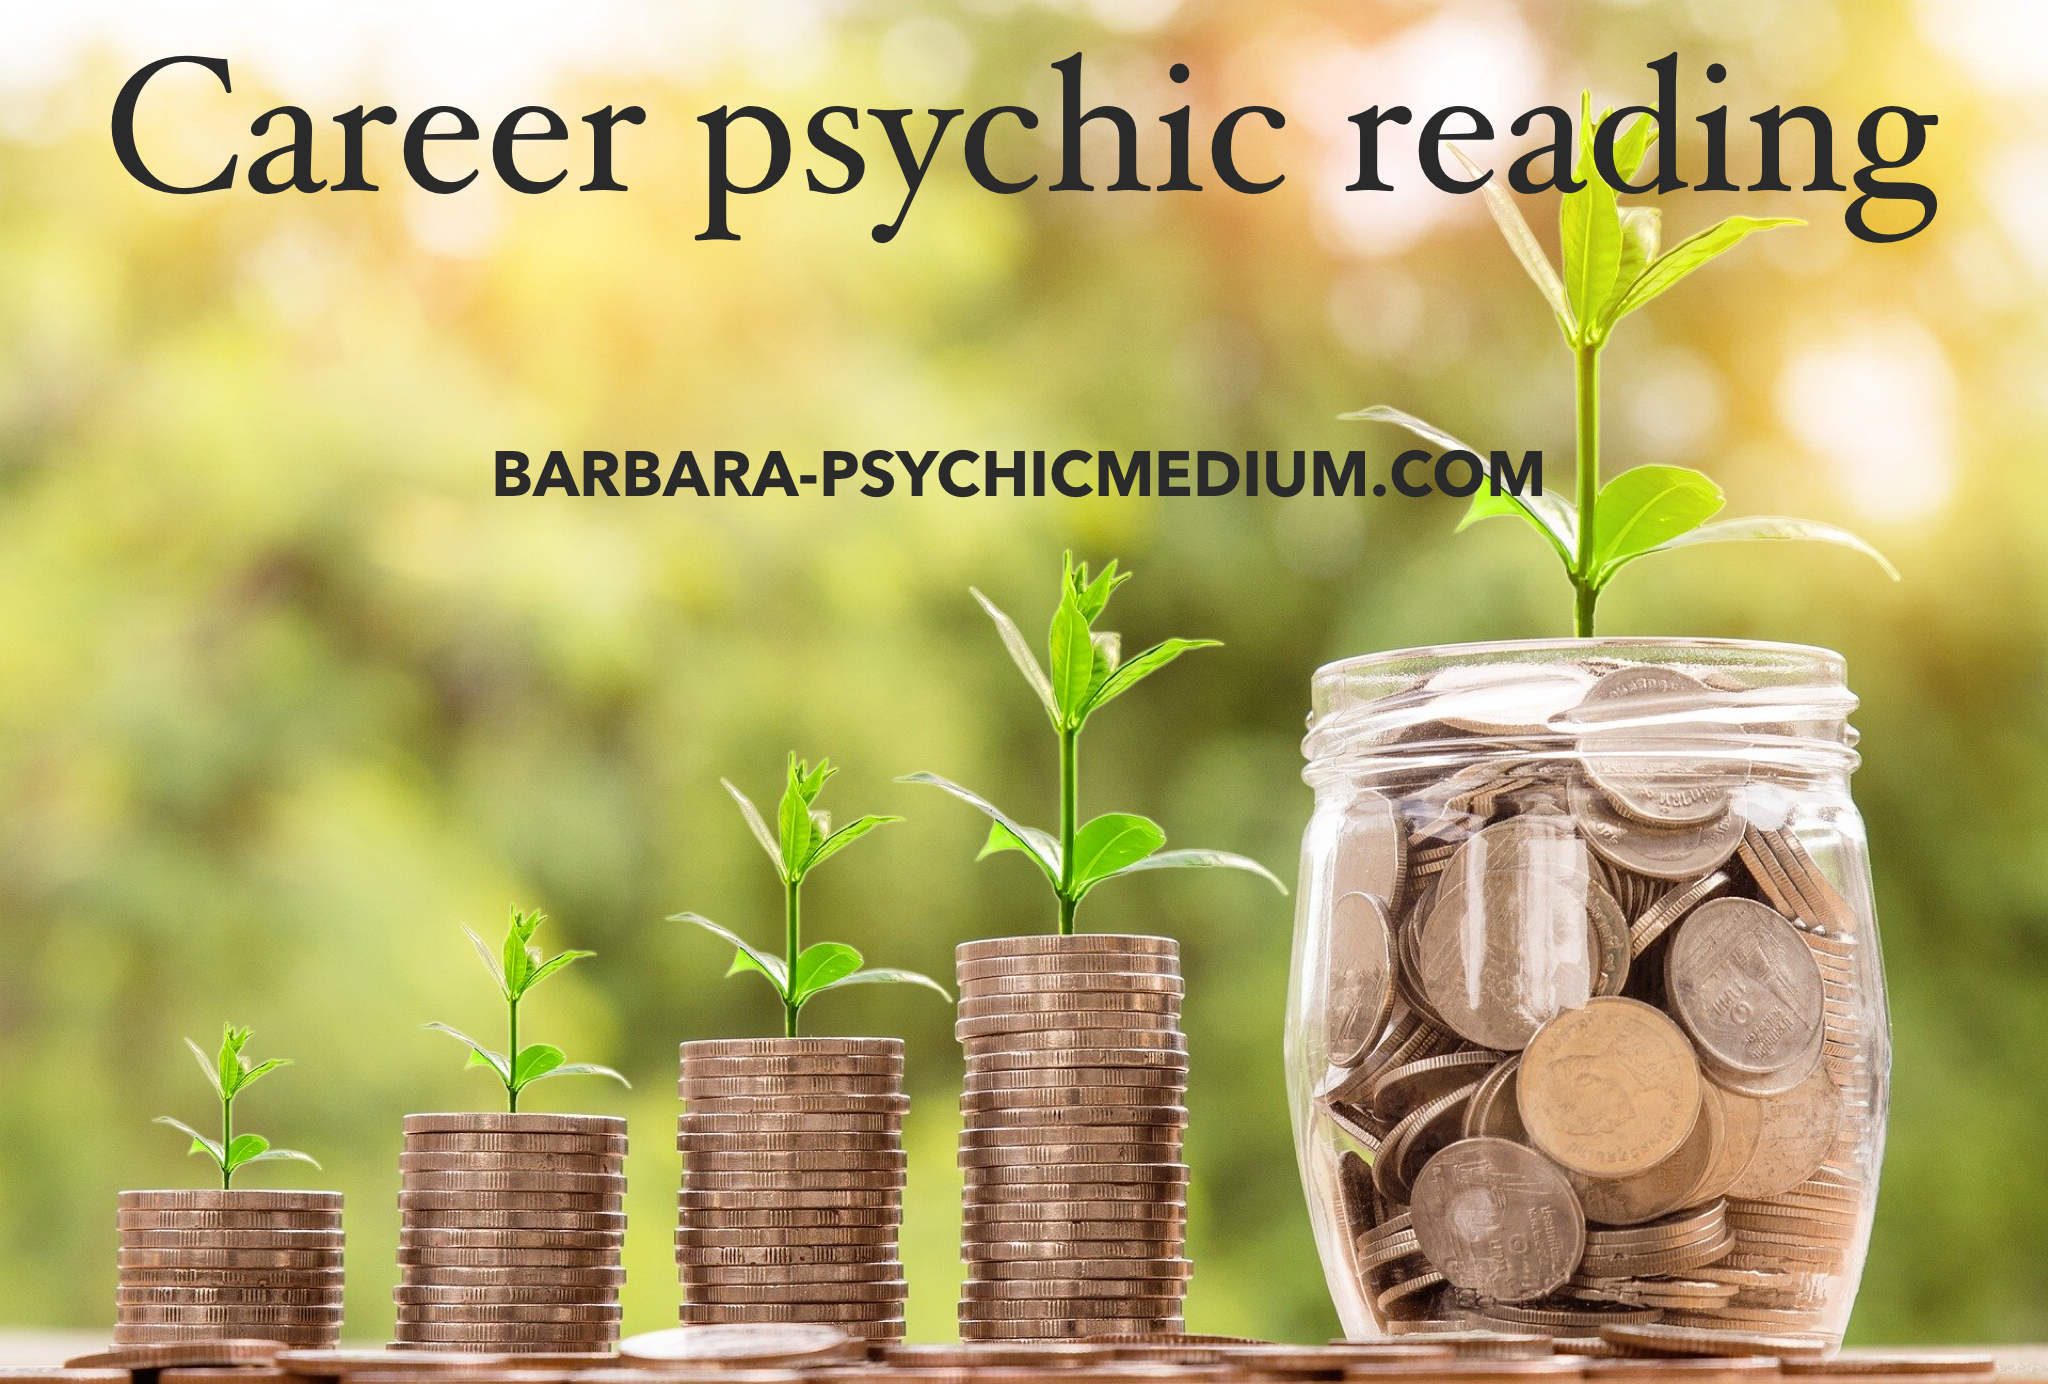 Career psychic reading